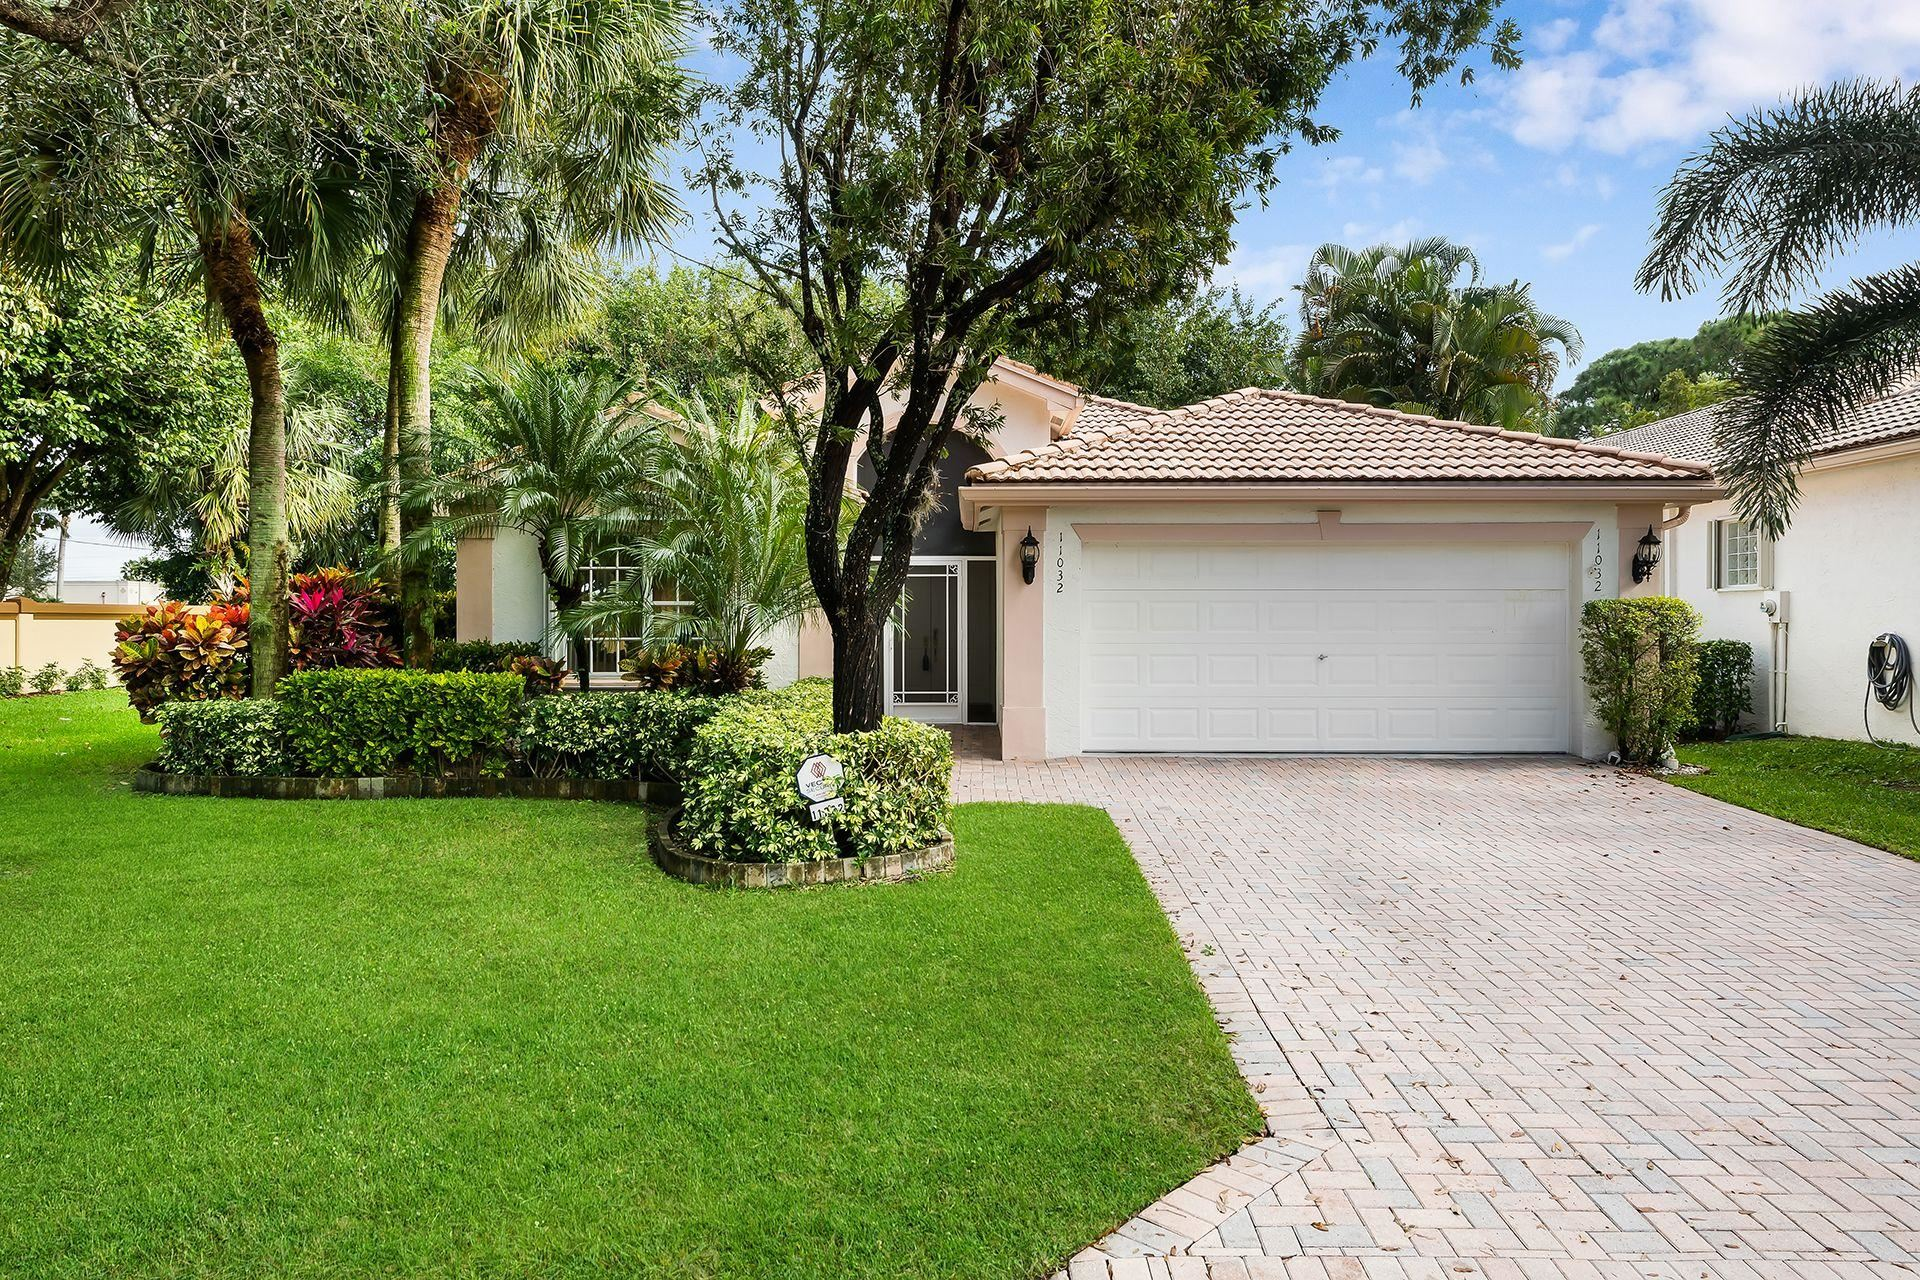 11032 Manele Court, Boynton Beach, FL 33437 - #: RX-10677684